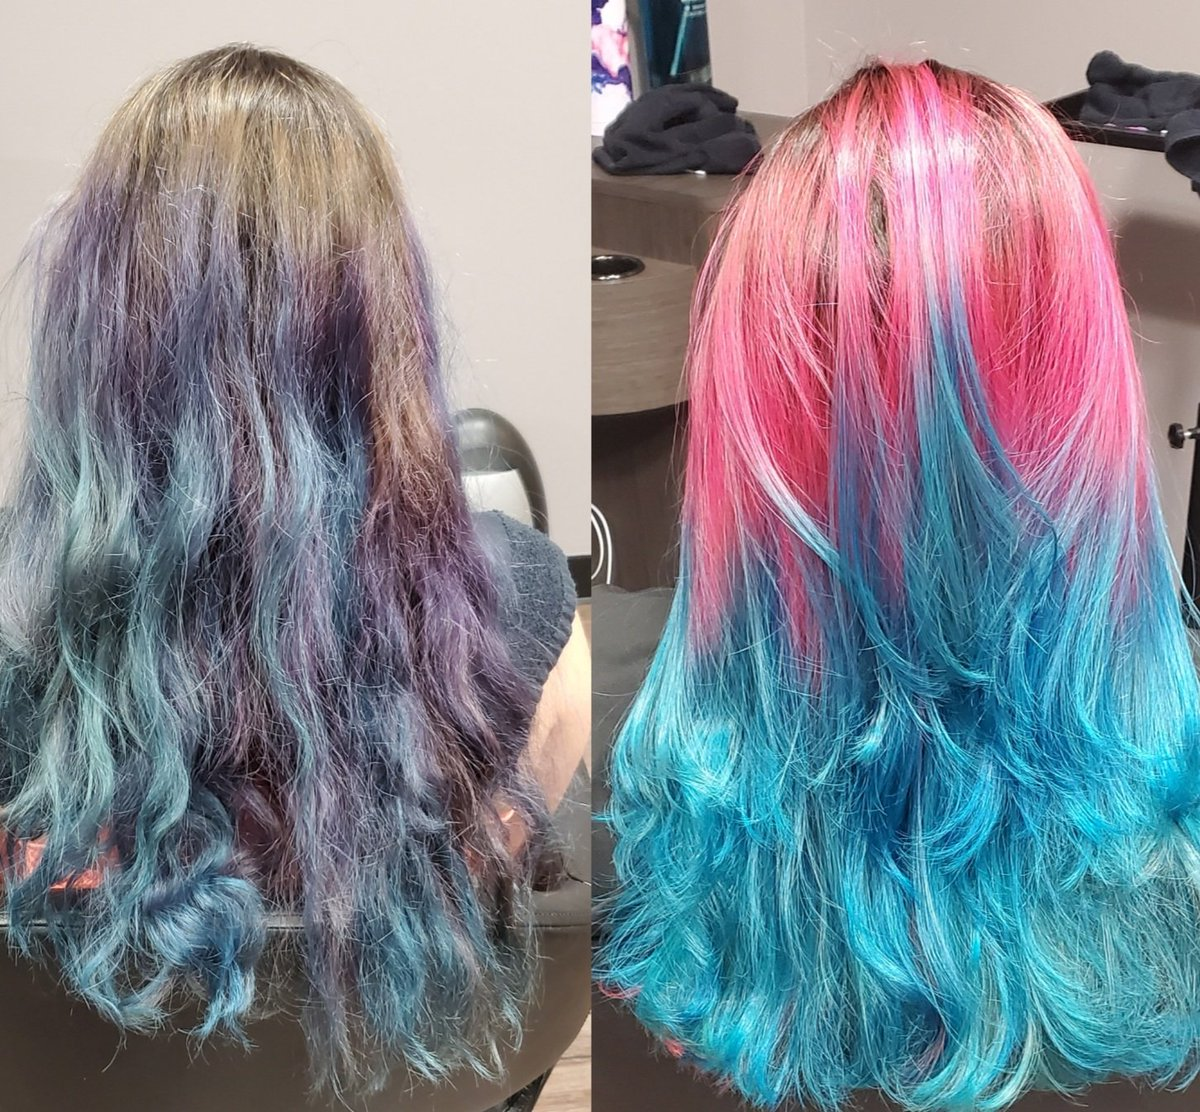 Before & After #haircolor #mermaidhair #MakeoverMondaypic.twitter.com/rMFHVX1nZC